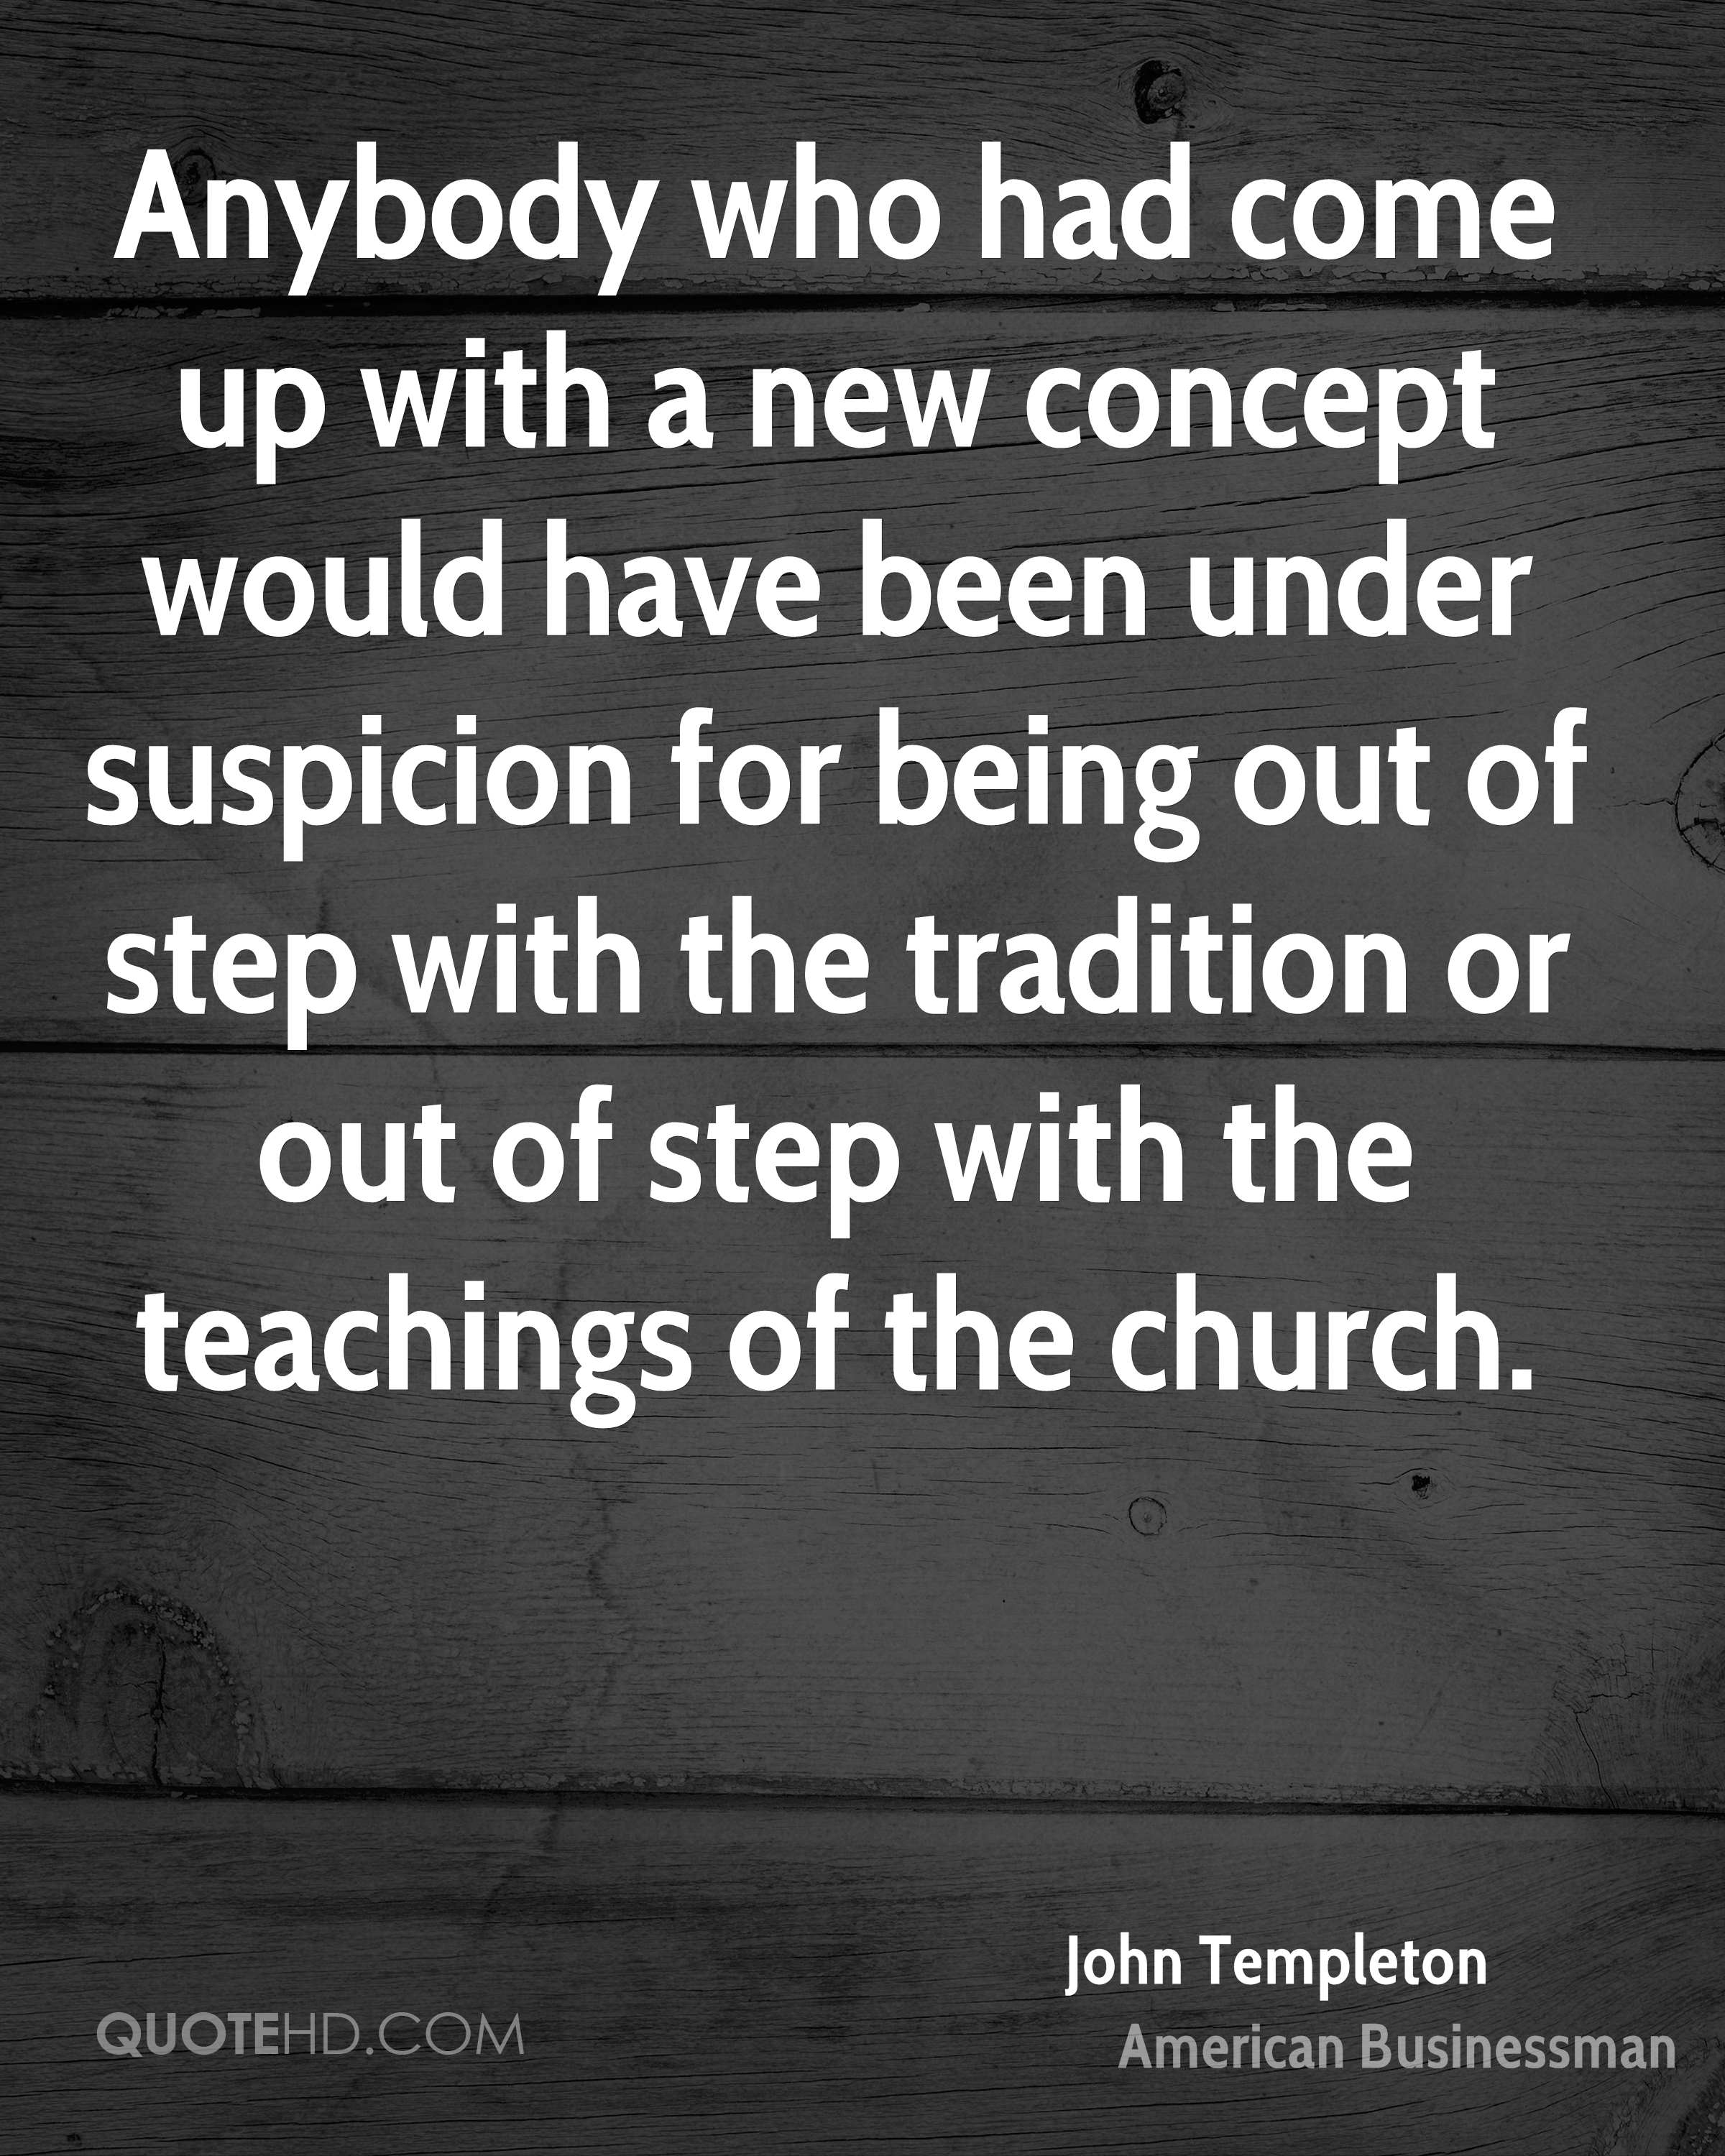 Anybody who had come up with a new concept would have been under suspicion for being out of step with the tradition or out of step with the teachings of the church.